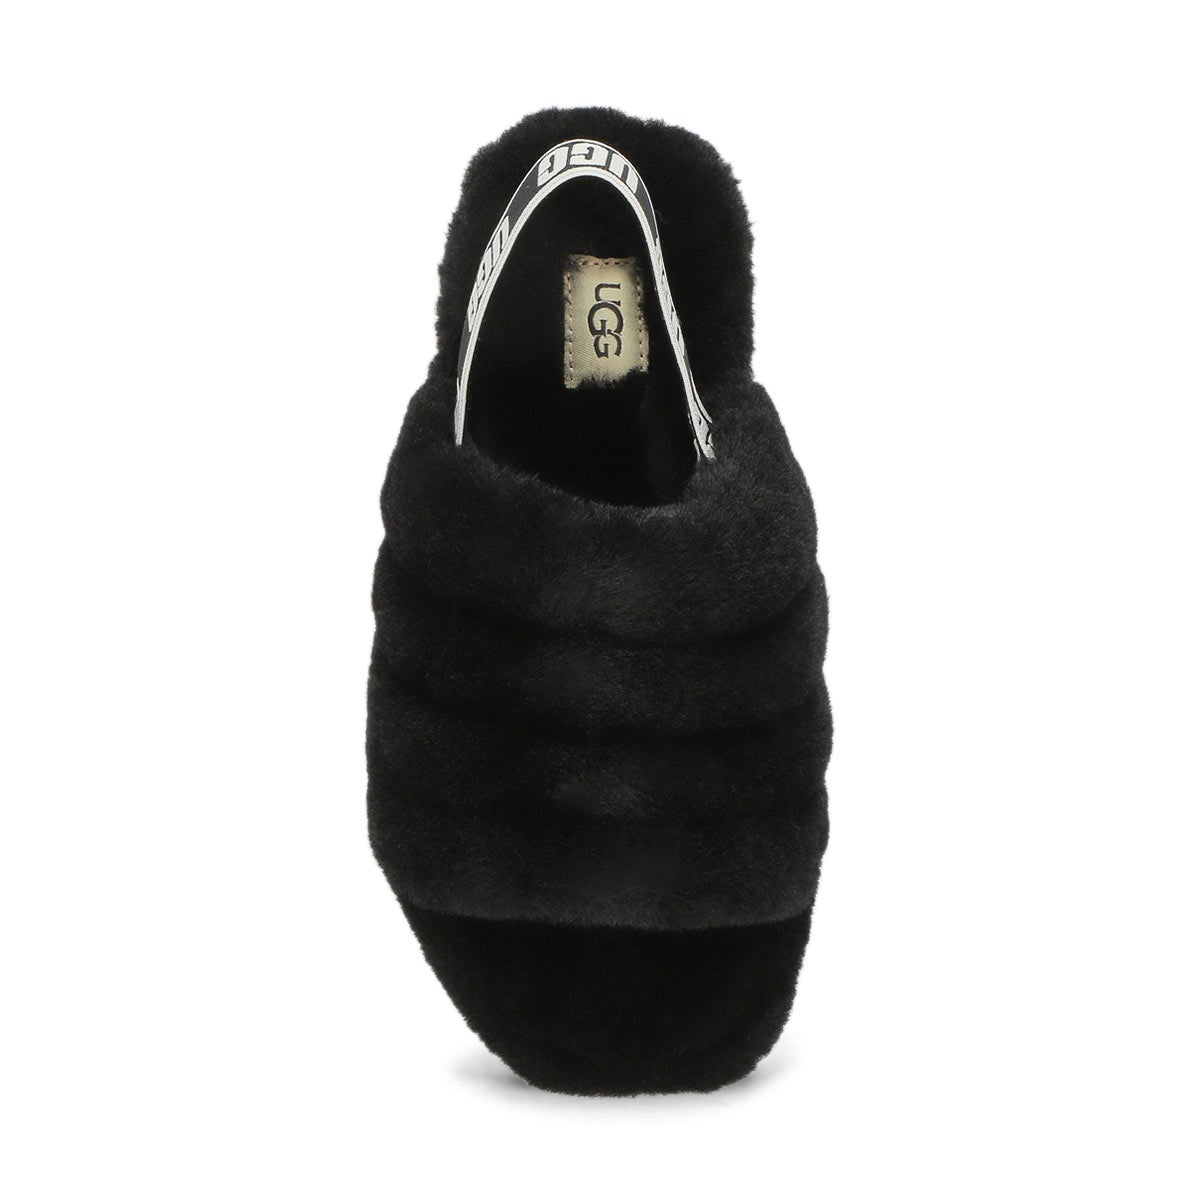 Grls Fluff Yeah black sheepskin slipper